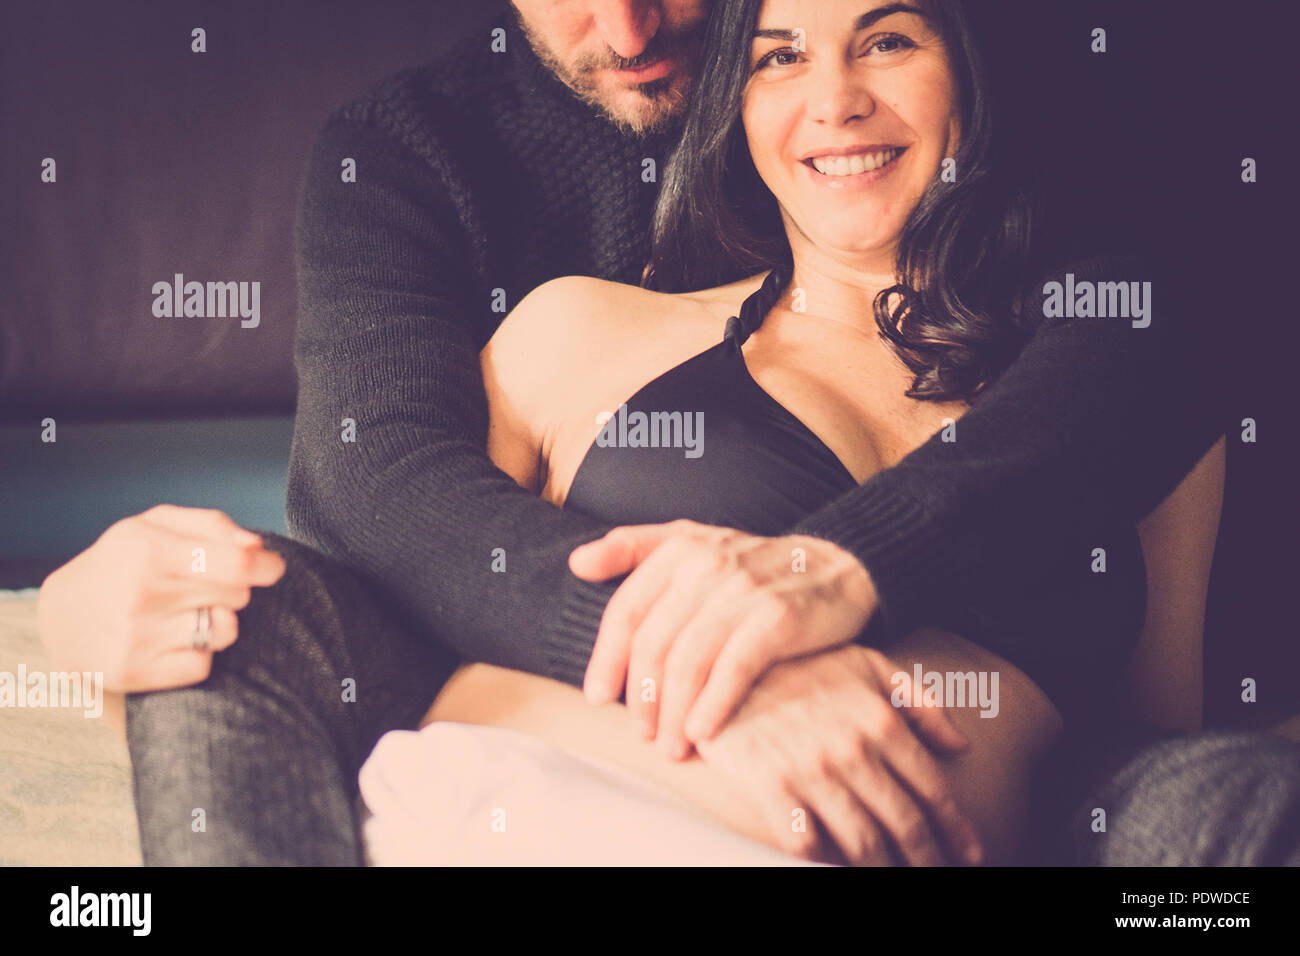 couple in love at home lay down on the bed smile and look eachother with tenderness. caucasian people indoor activity. She pregnant for new family and - Stock Image